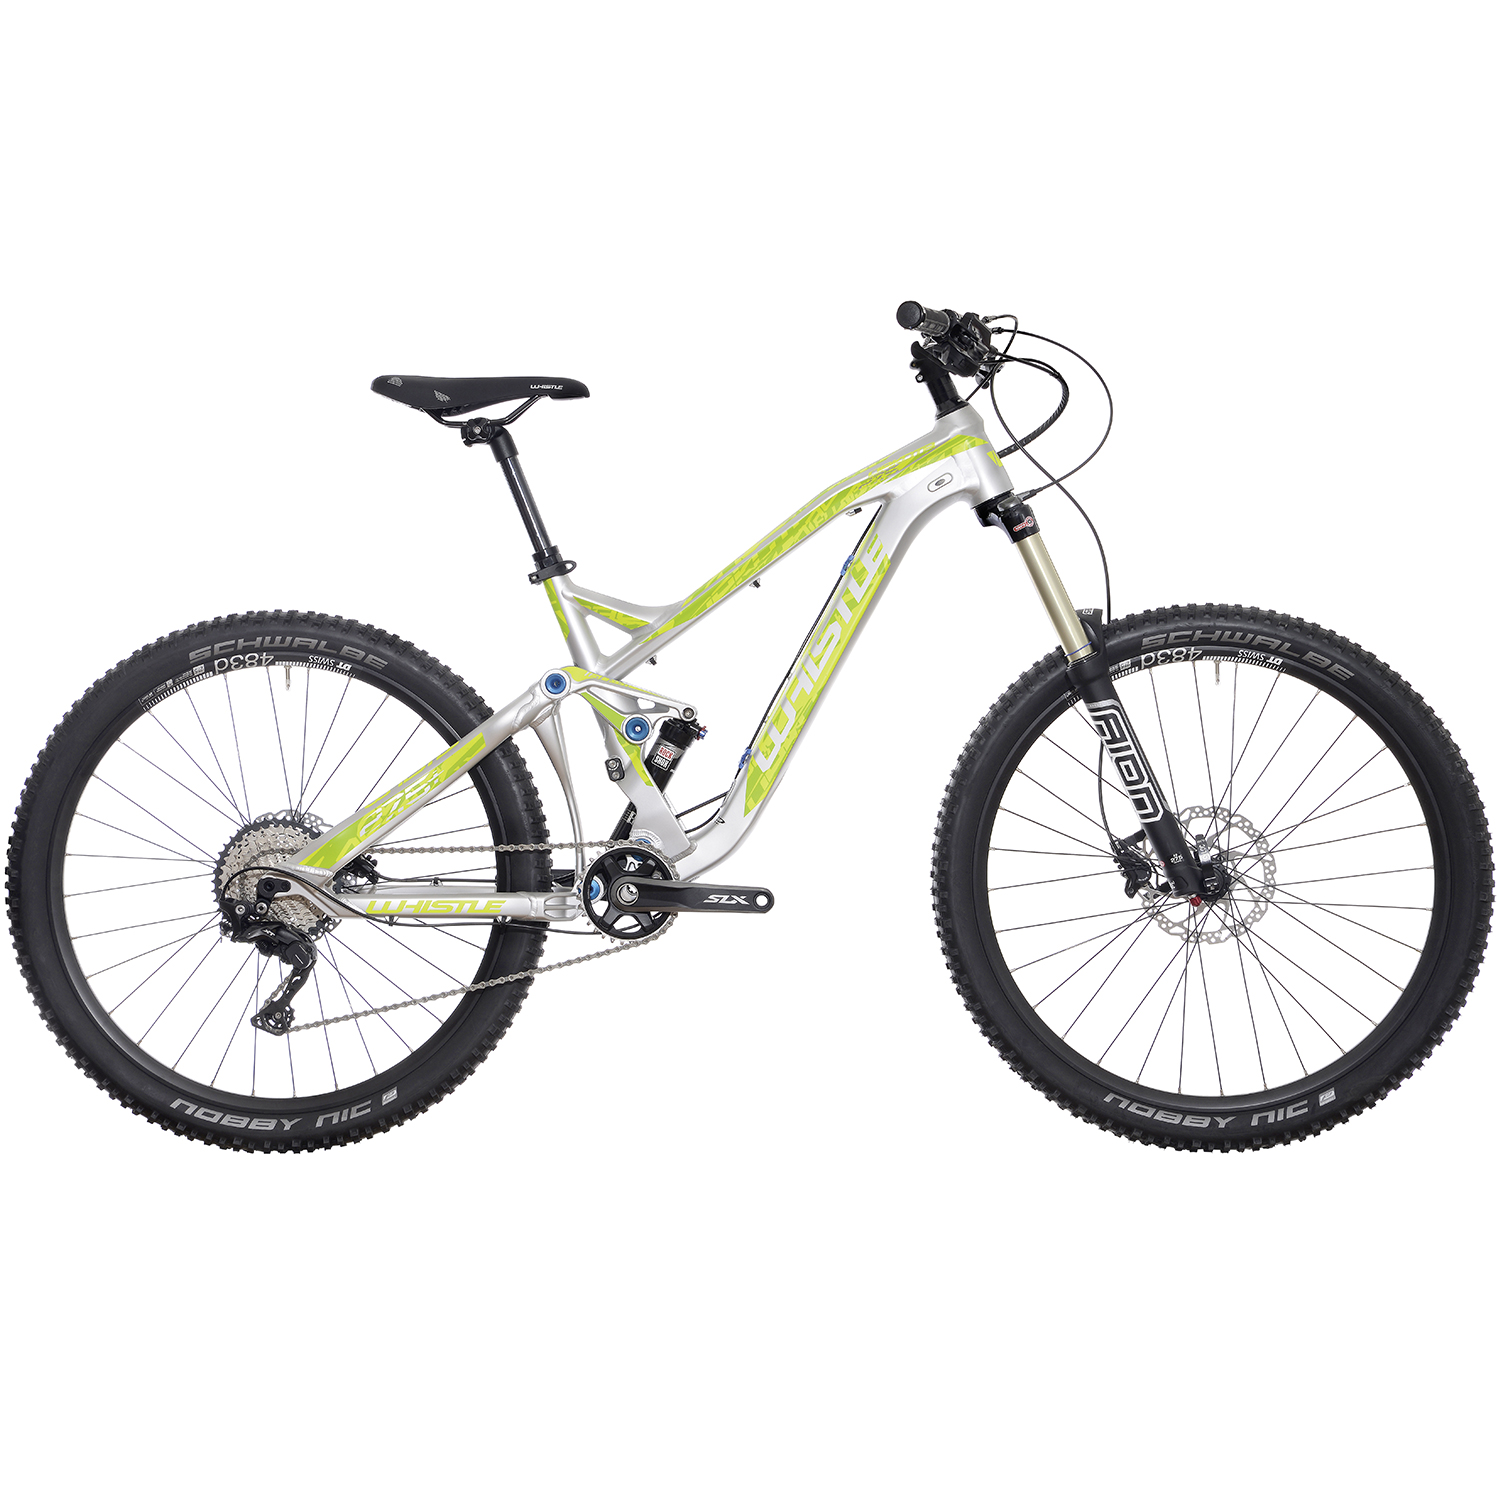 whistle dakota 1722 27 5 zoll mountainbike rahmengr e 17. Black Bedroom Furniture Sets. Home Design Ideas